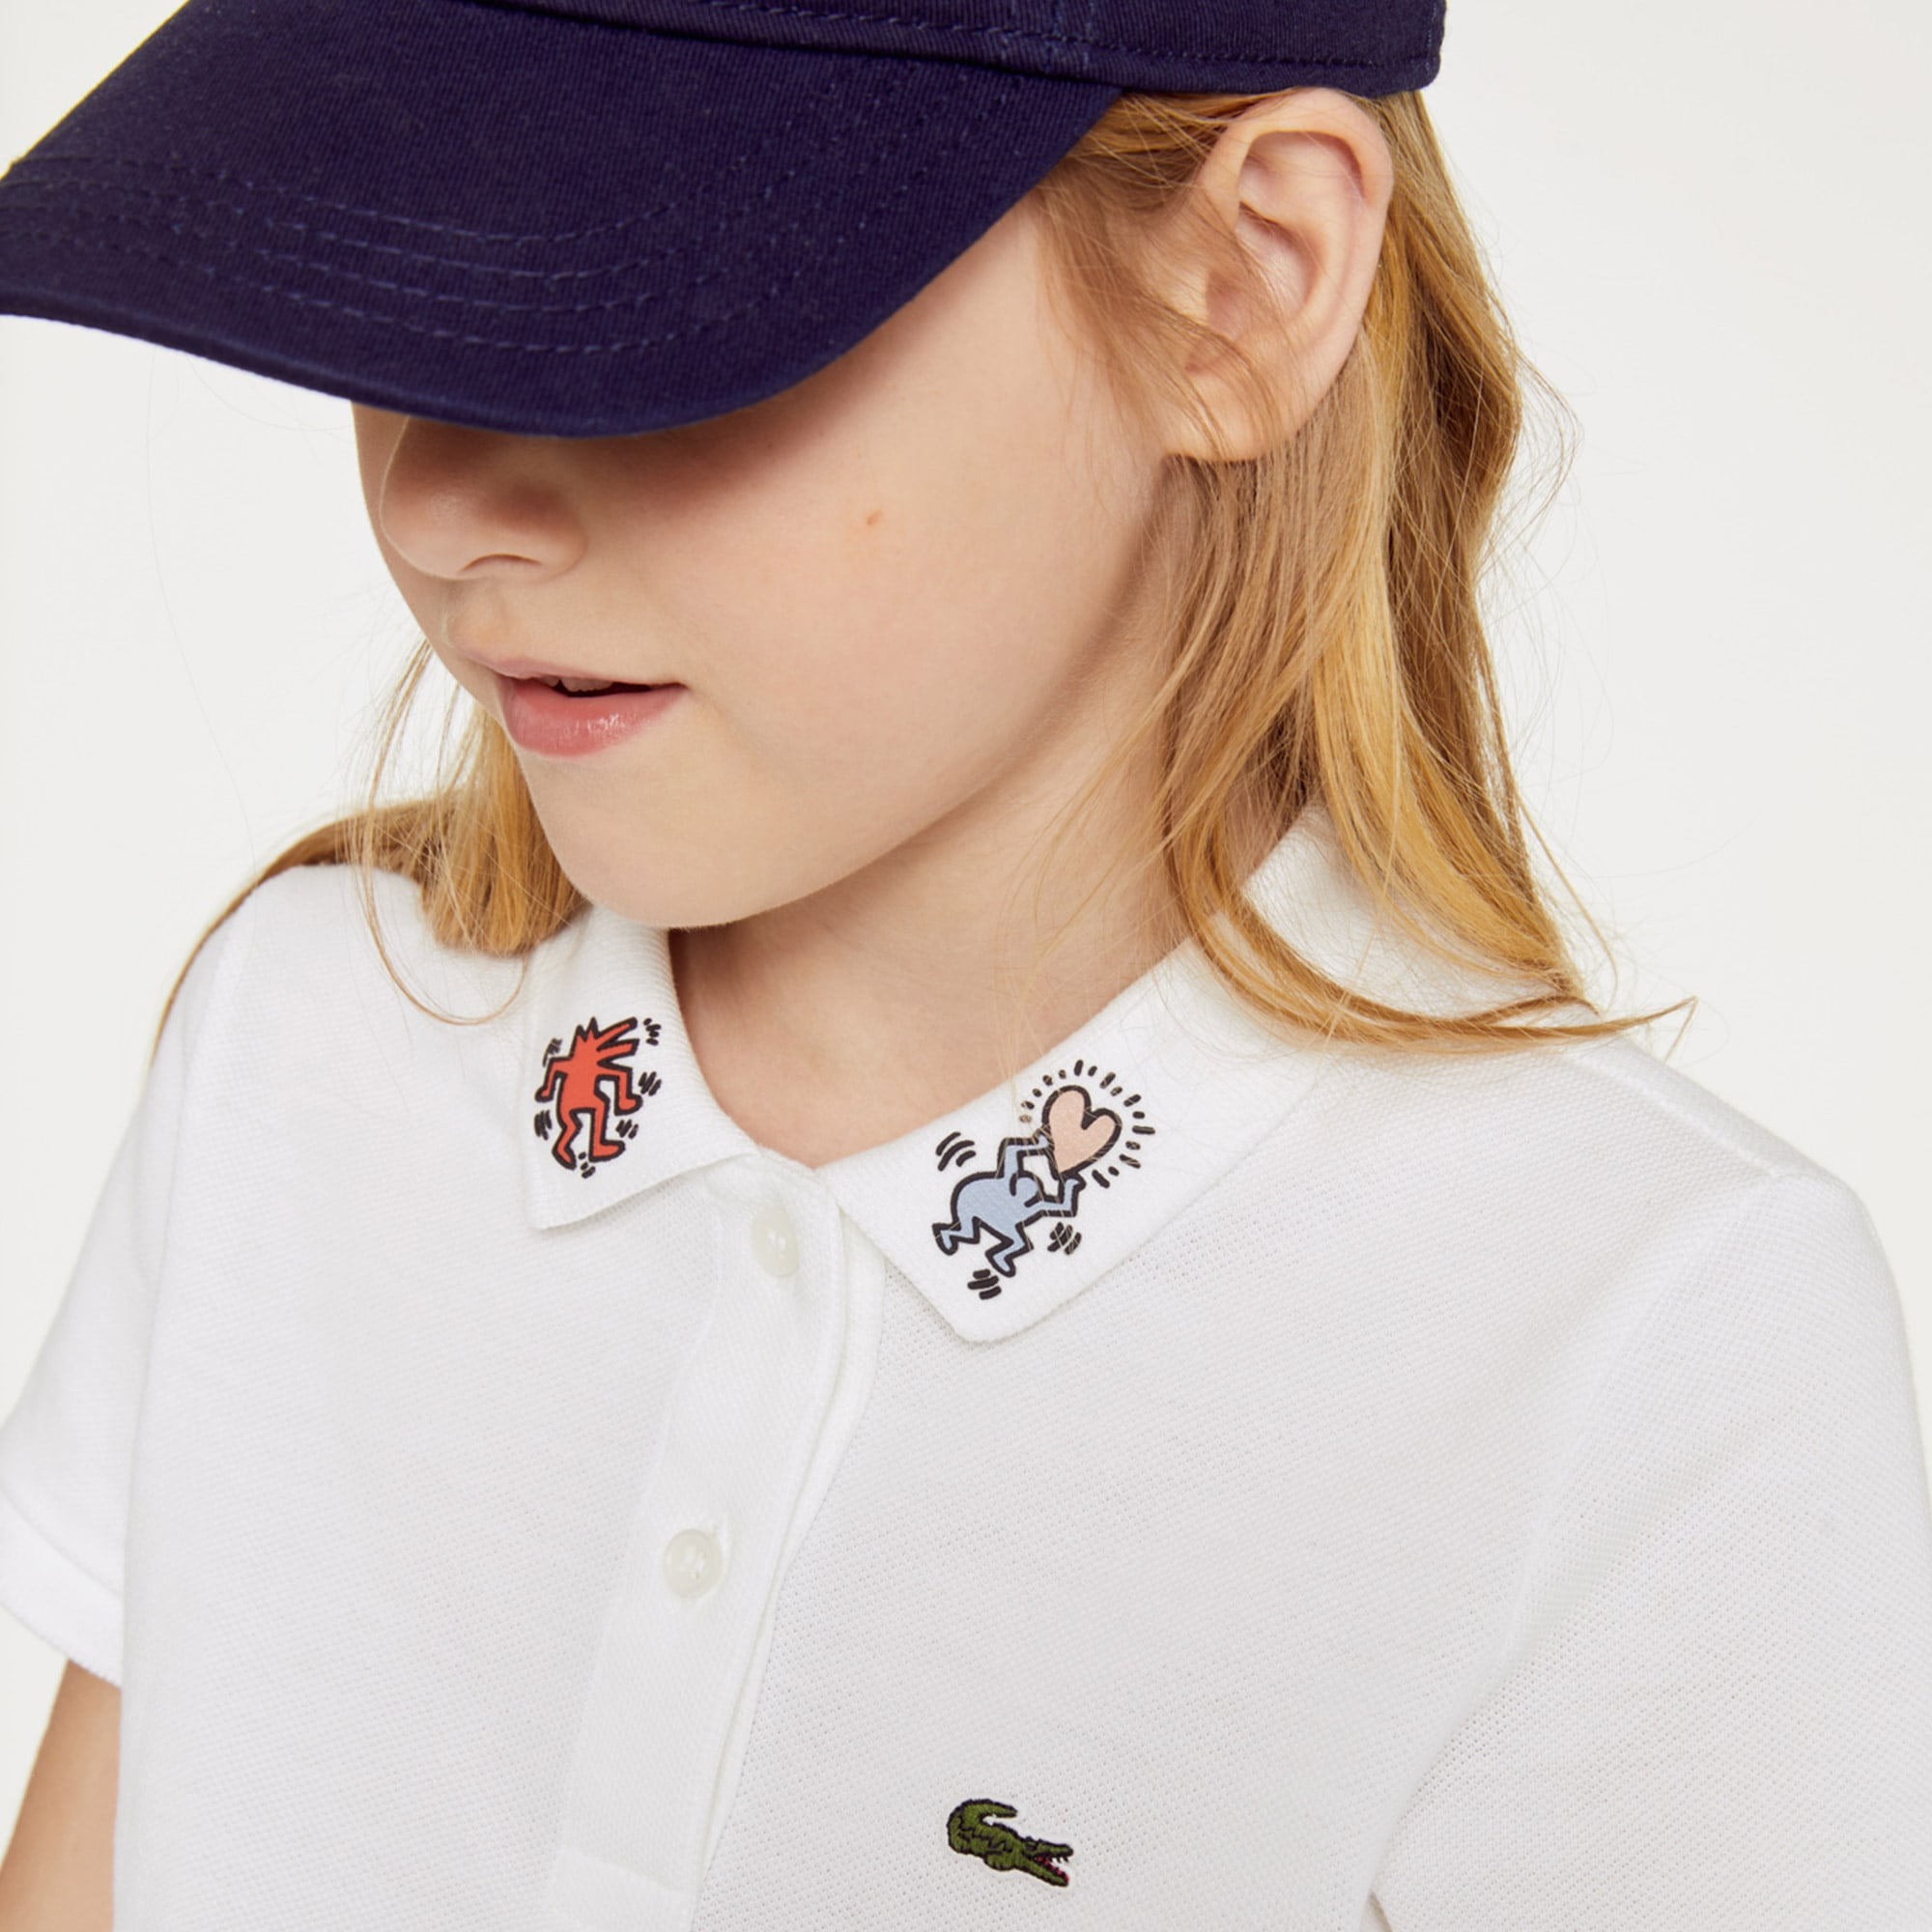 b0f9b2741 Girls  Lacoste Flounced Sleeved Striped Cotton Polo Shirt. C  65.00 - C   70.00. Girls  Keith Haring Patterned Cotton Polo